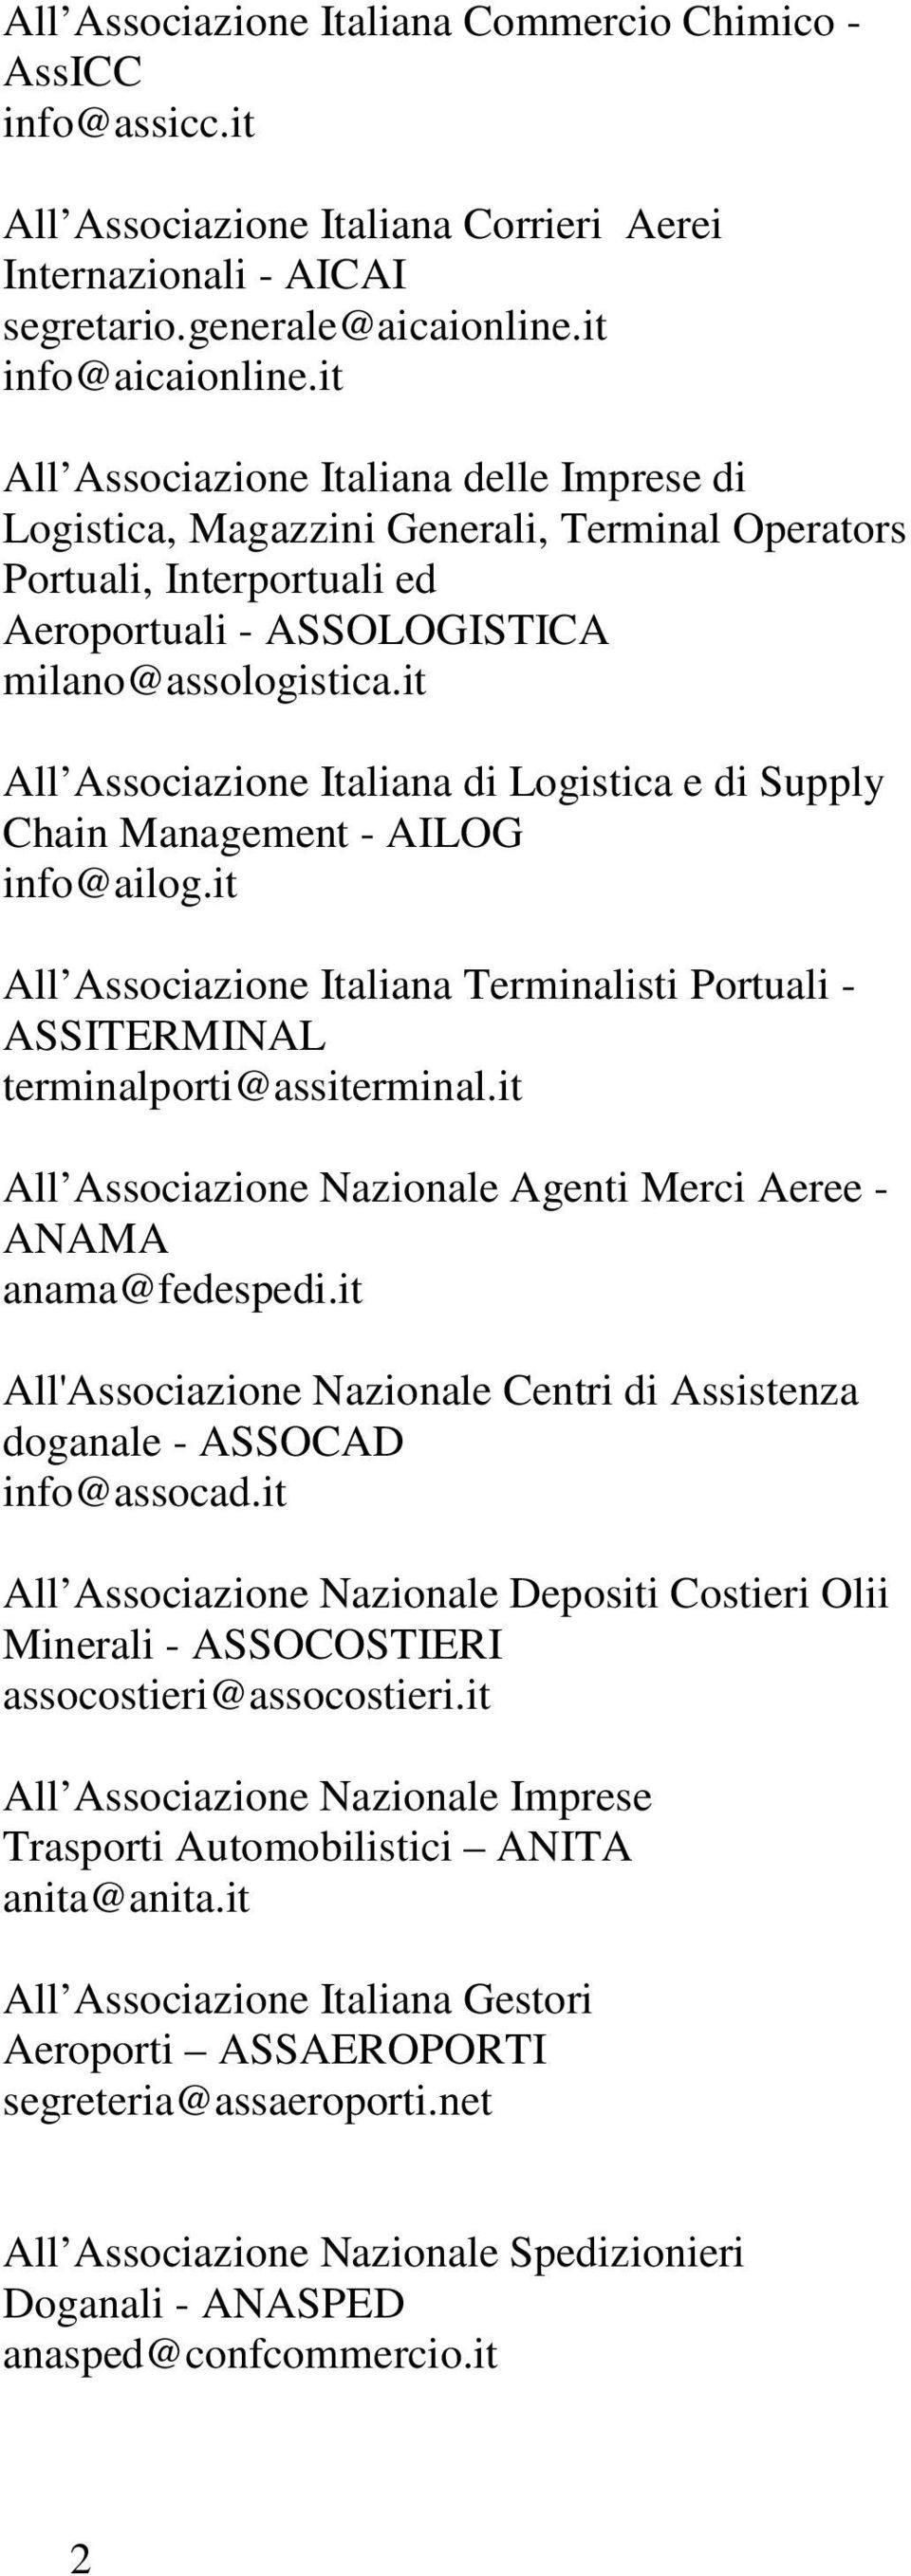 it All Associazione Italiana di Logistica e di Supply Chain Management - AILOG info@ailog.it All Associazione Italiana Terminalisti Portuali - ASSITERMINAL terminalporti@assiterminal.